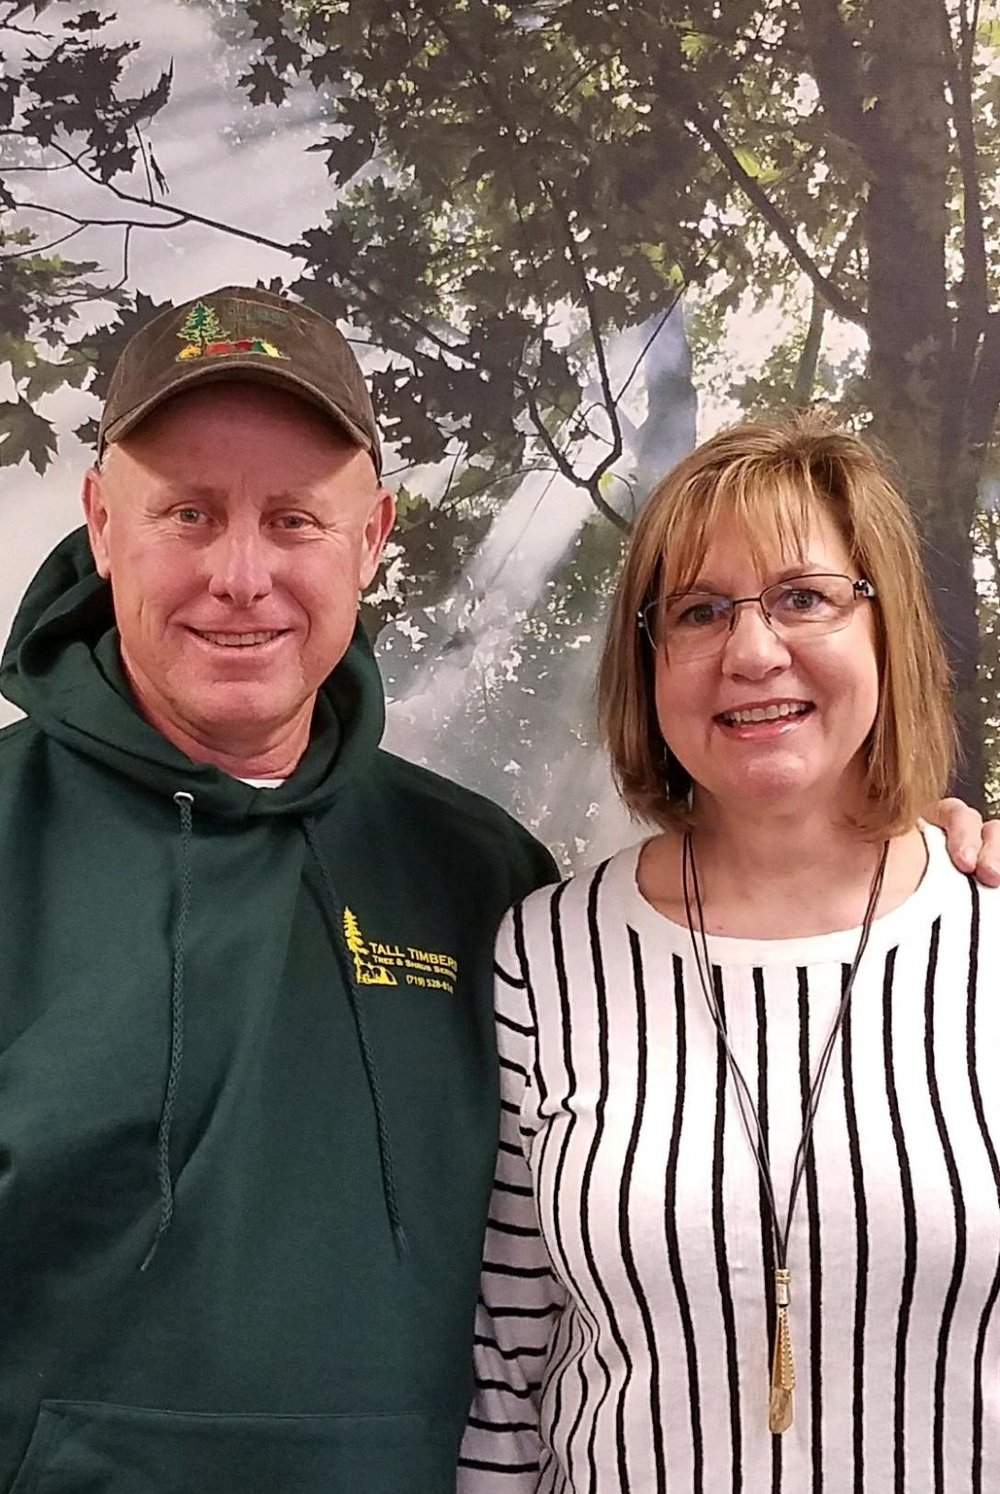 Dave and Debi Carpenter - Owners/OperatorsISA Certified ArboristPesticide License - CO Dept of Ag., QSDave and Debi founded Tall Timbers in June of 2000 with a single pick-up truck and chainsaw.  Through hard work and persistence they have grown Tall Timbers into the industry leader in El Paso County. They have great pride in their business and take full responsibility for all successes and failures throughout the organization. Dave has been in the green industry since 1985.  He attended the Davey Institute of Tree Science in Kent, Ohio.  Dave is an ISA Certified Arborist and carries a QS license with the CO Dept. of Agriculture.  Dave has an unrivaled passion for tree care and believes in preserving as many trees as possible to sustain our urban forests.Debi has over 20 years experience working in the green industry.  She handles all of the behind the scenes work in the office at Tall Timbers.  From HR and accounting to scheduling and payroll, she keeps the organization running smoothly.  Debi takes great pride in providing unmatched customer service to every one of our clients.